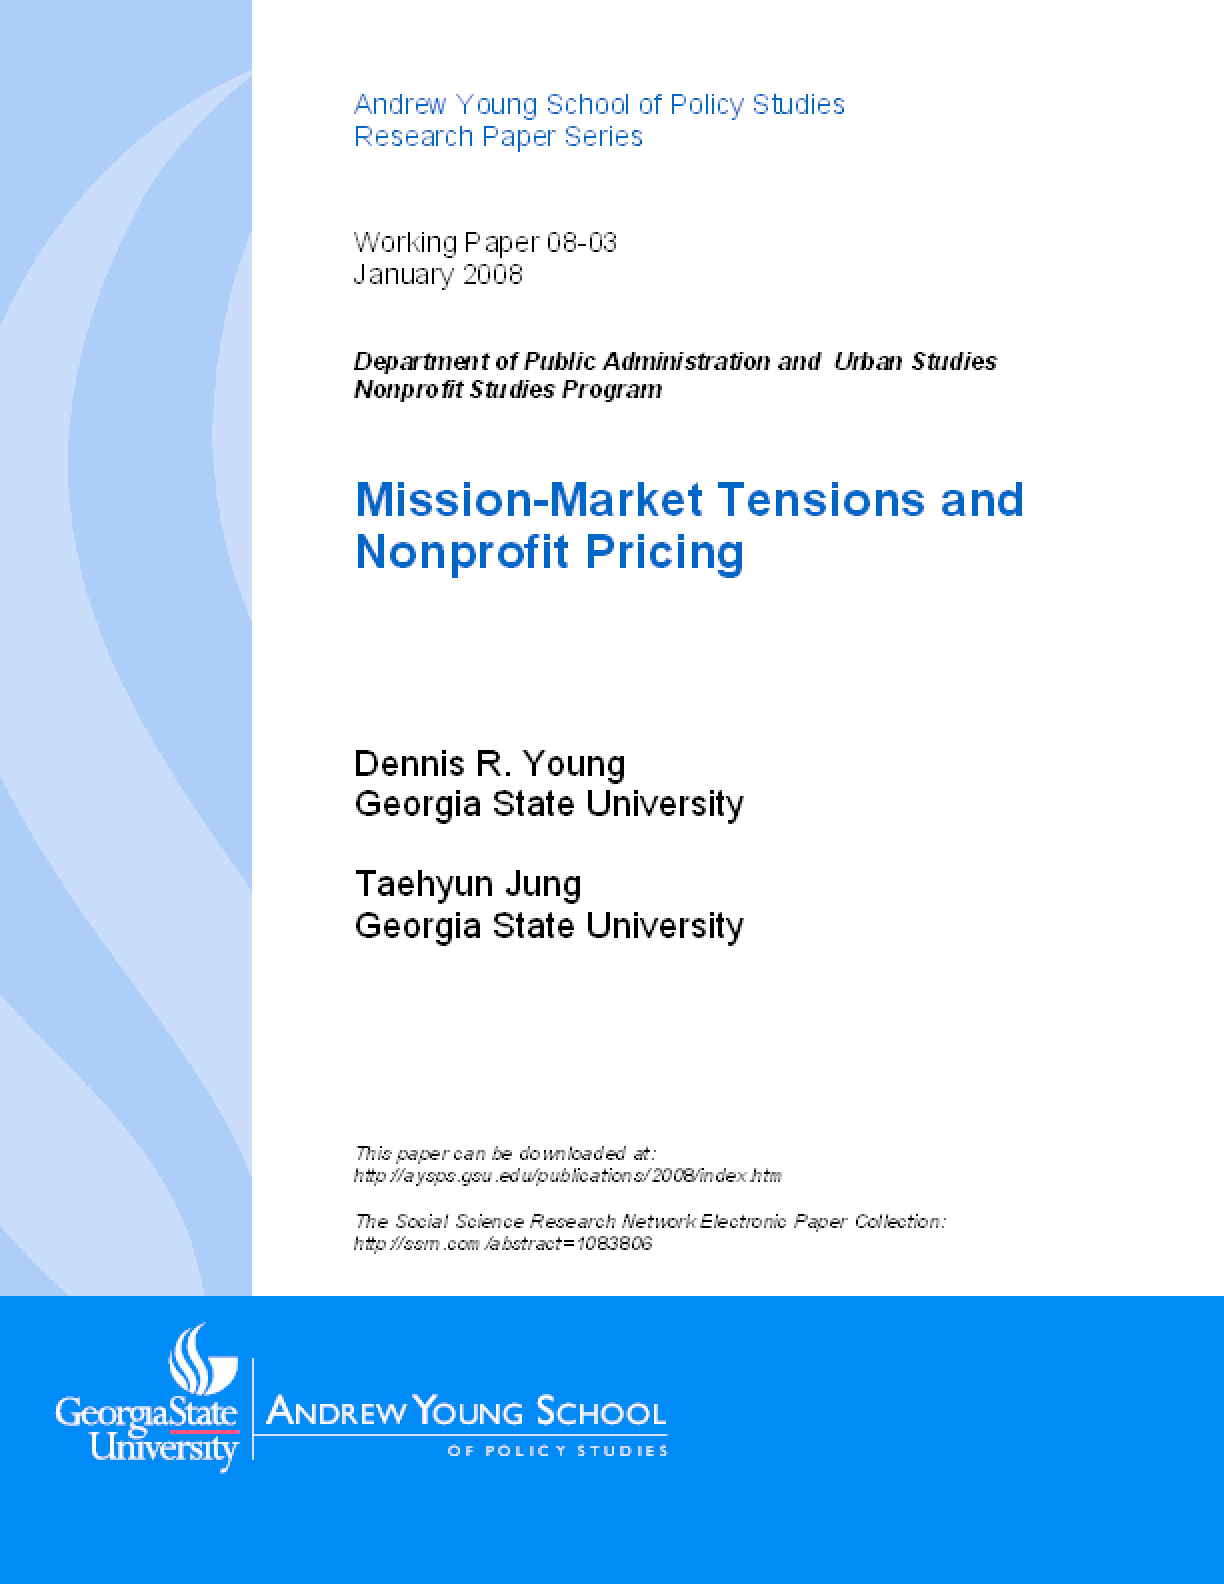 Mission-Market Tensions and Nonprofit Pricing